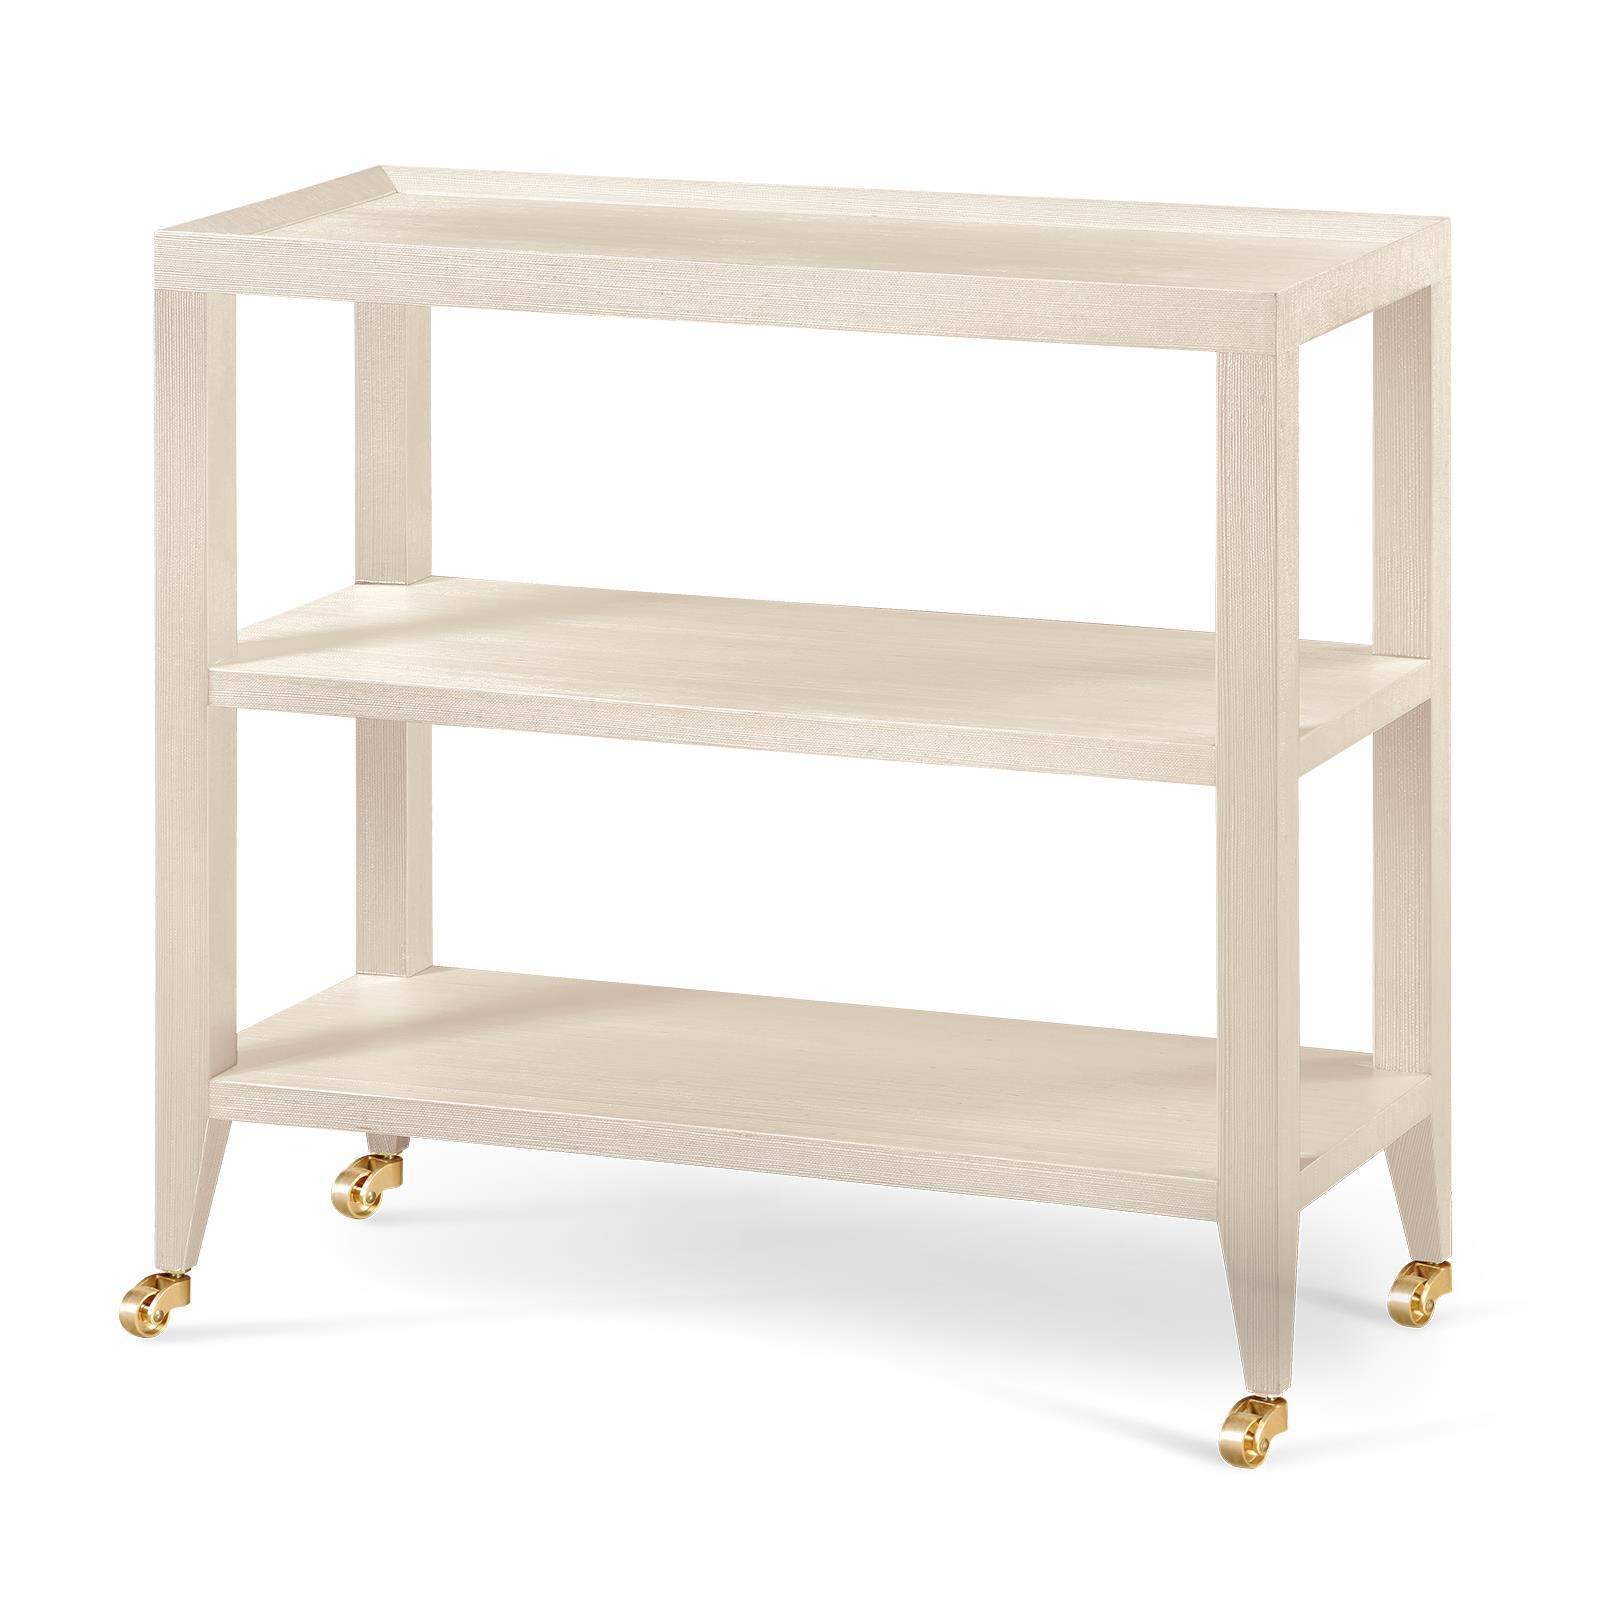 Bungalow 5 - ISADORA CONSOLE TABLE in NATURAL